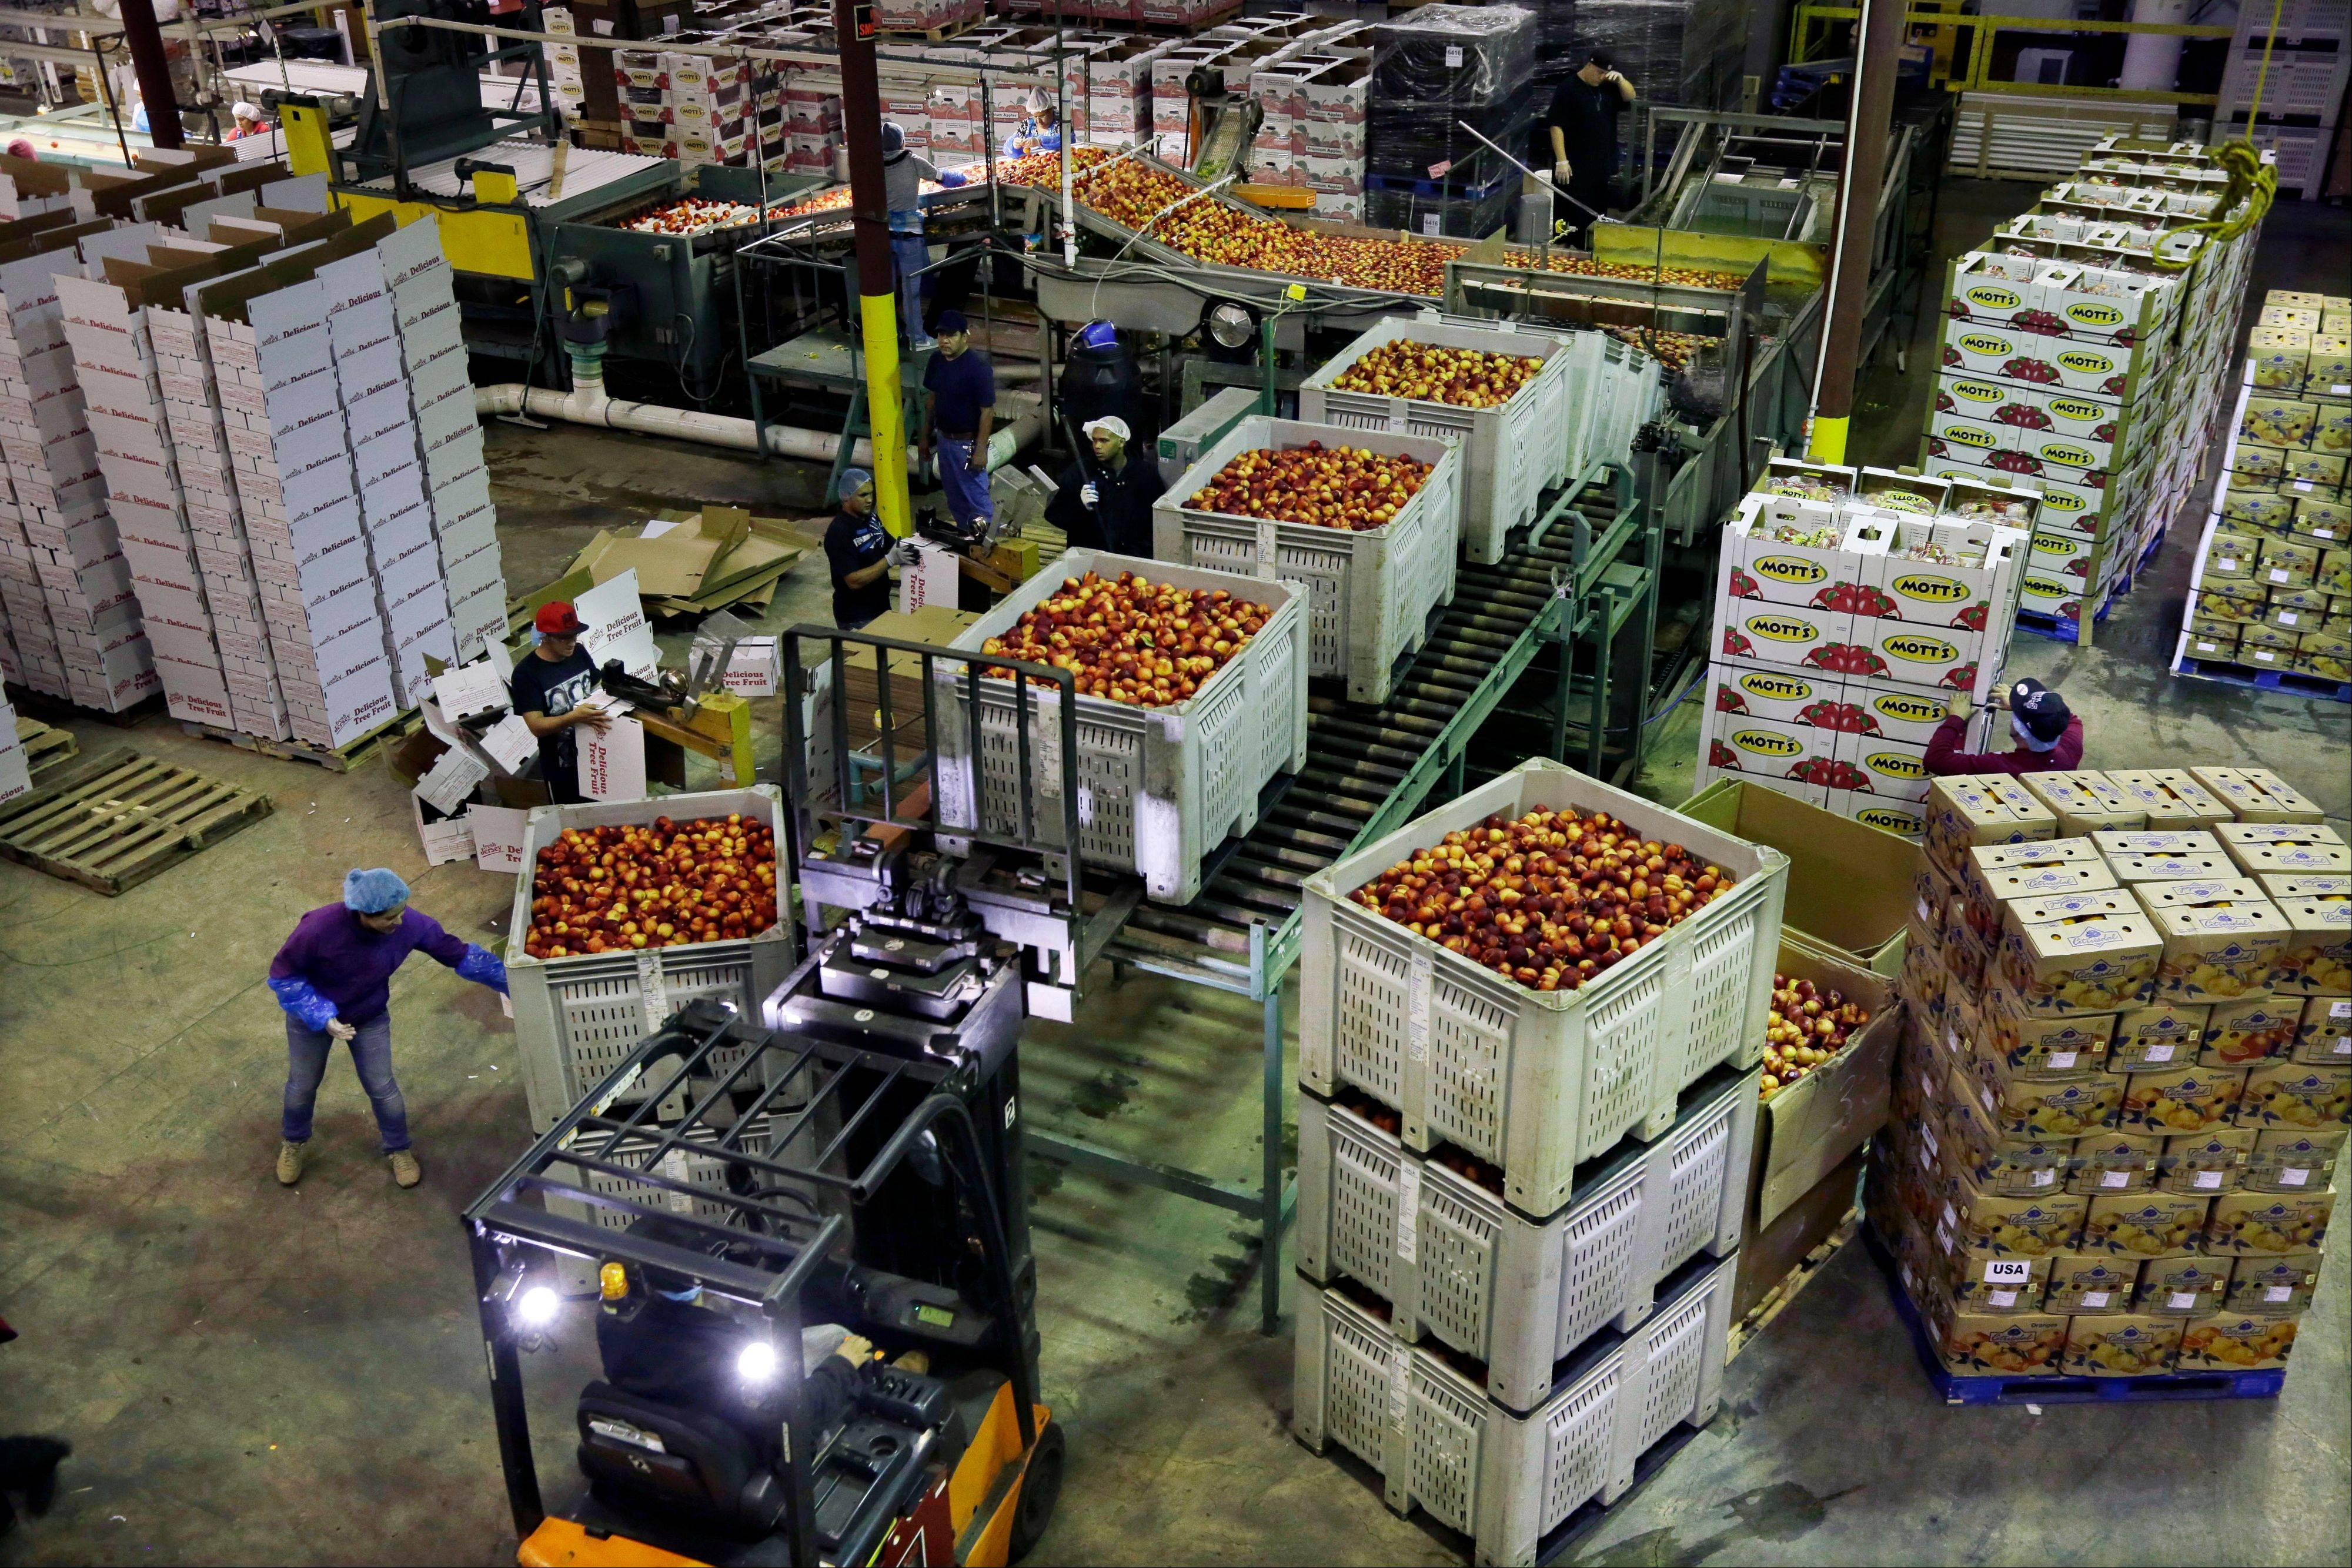 Workers load large containers of nectarines for sorting at Eastern ProPak Farmers Cooperative in Glassboro, N.J. Higher energy costs pushed U.S. wholesale prices up 0.3 percent last month. Prices rose a modest 1.4 percent over the past year, the lowest one-year gain since April.